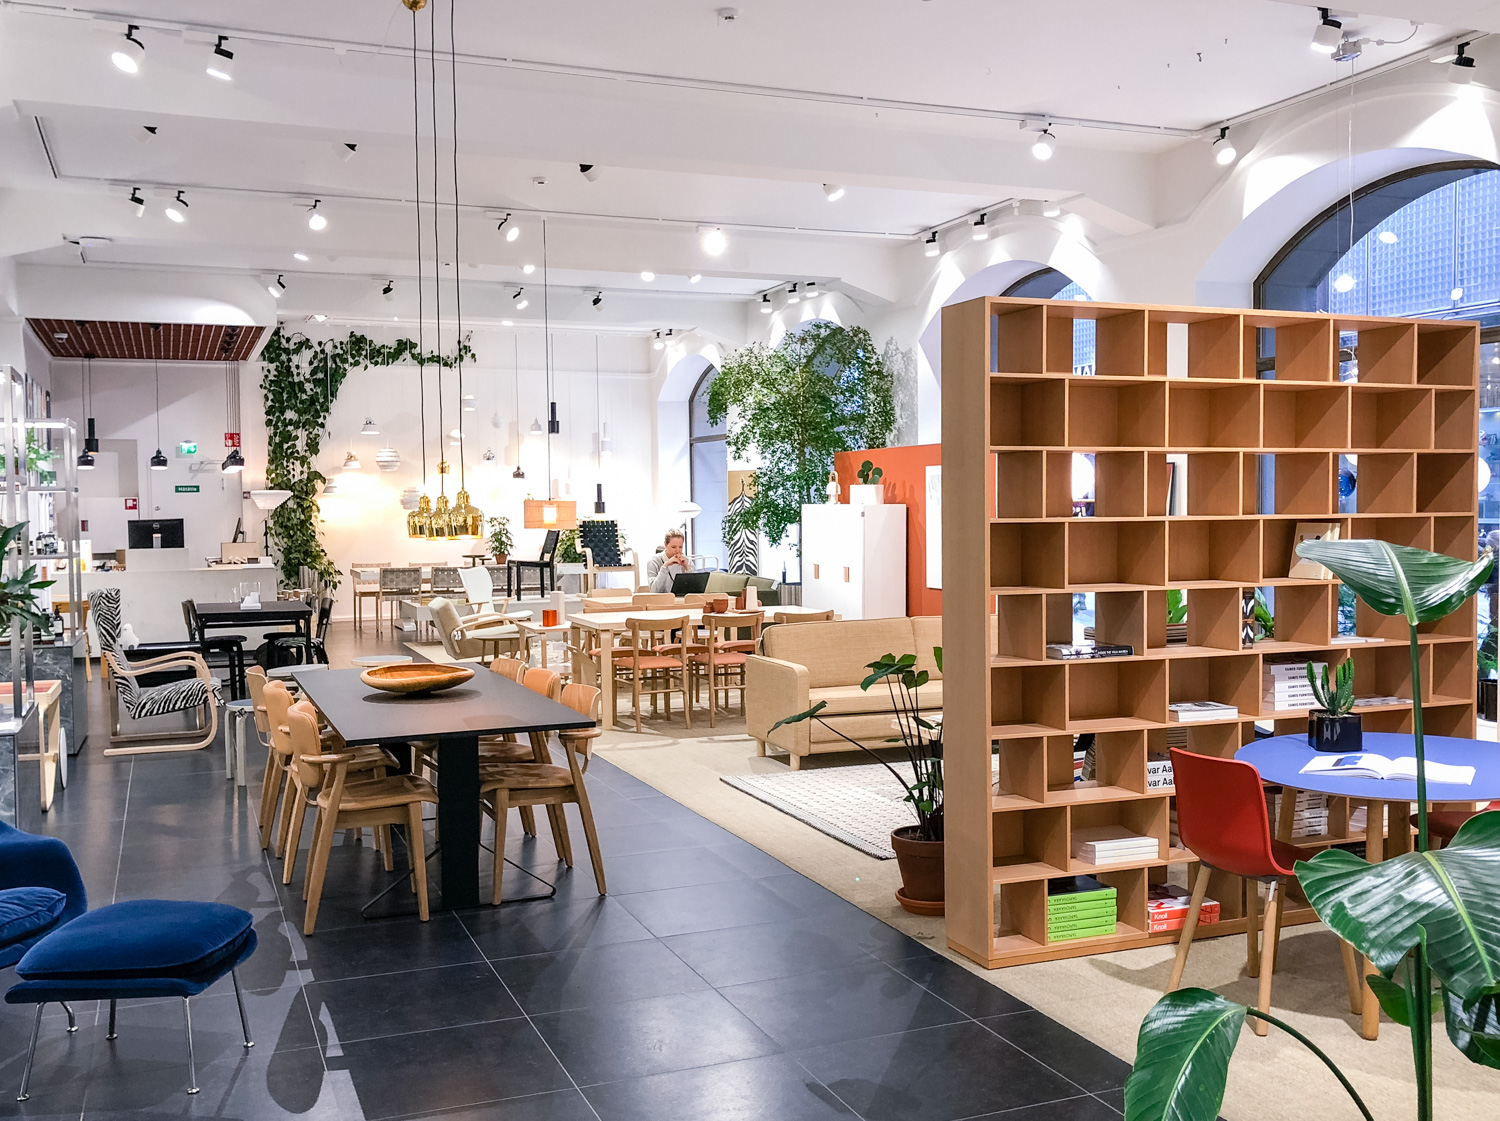 Artek design district Helsingfors